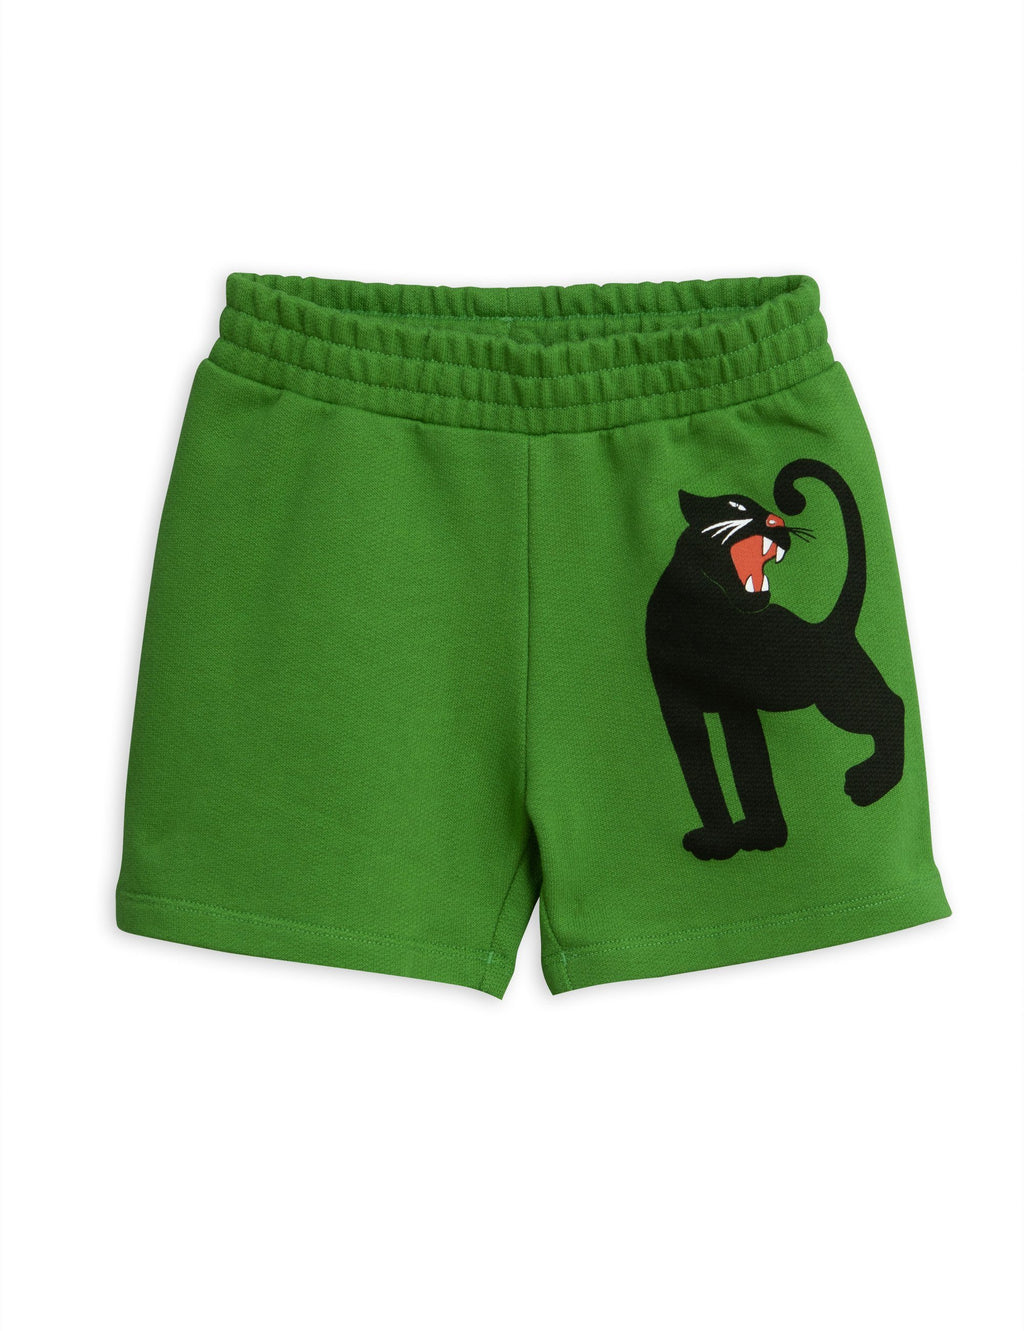 Panther sweatshorts Mini Rodini